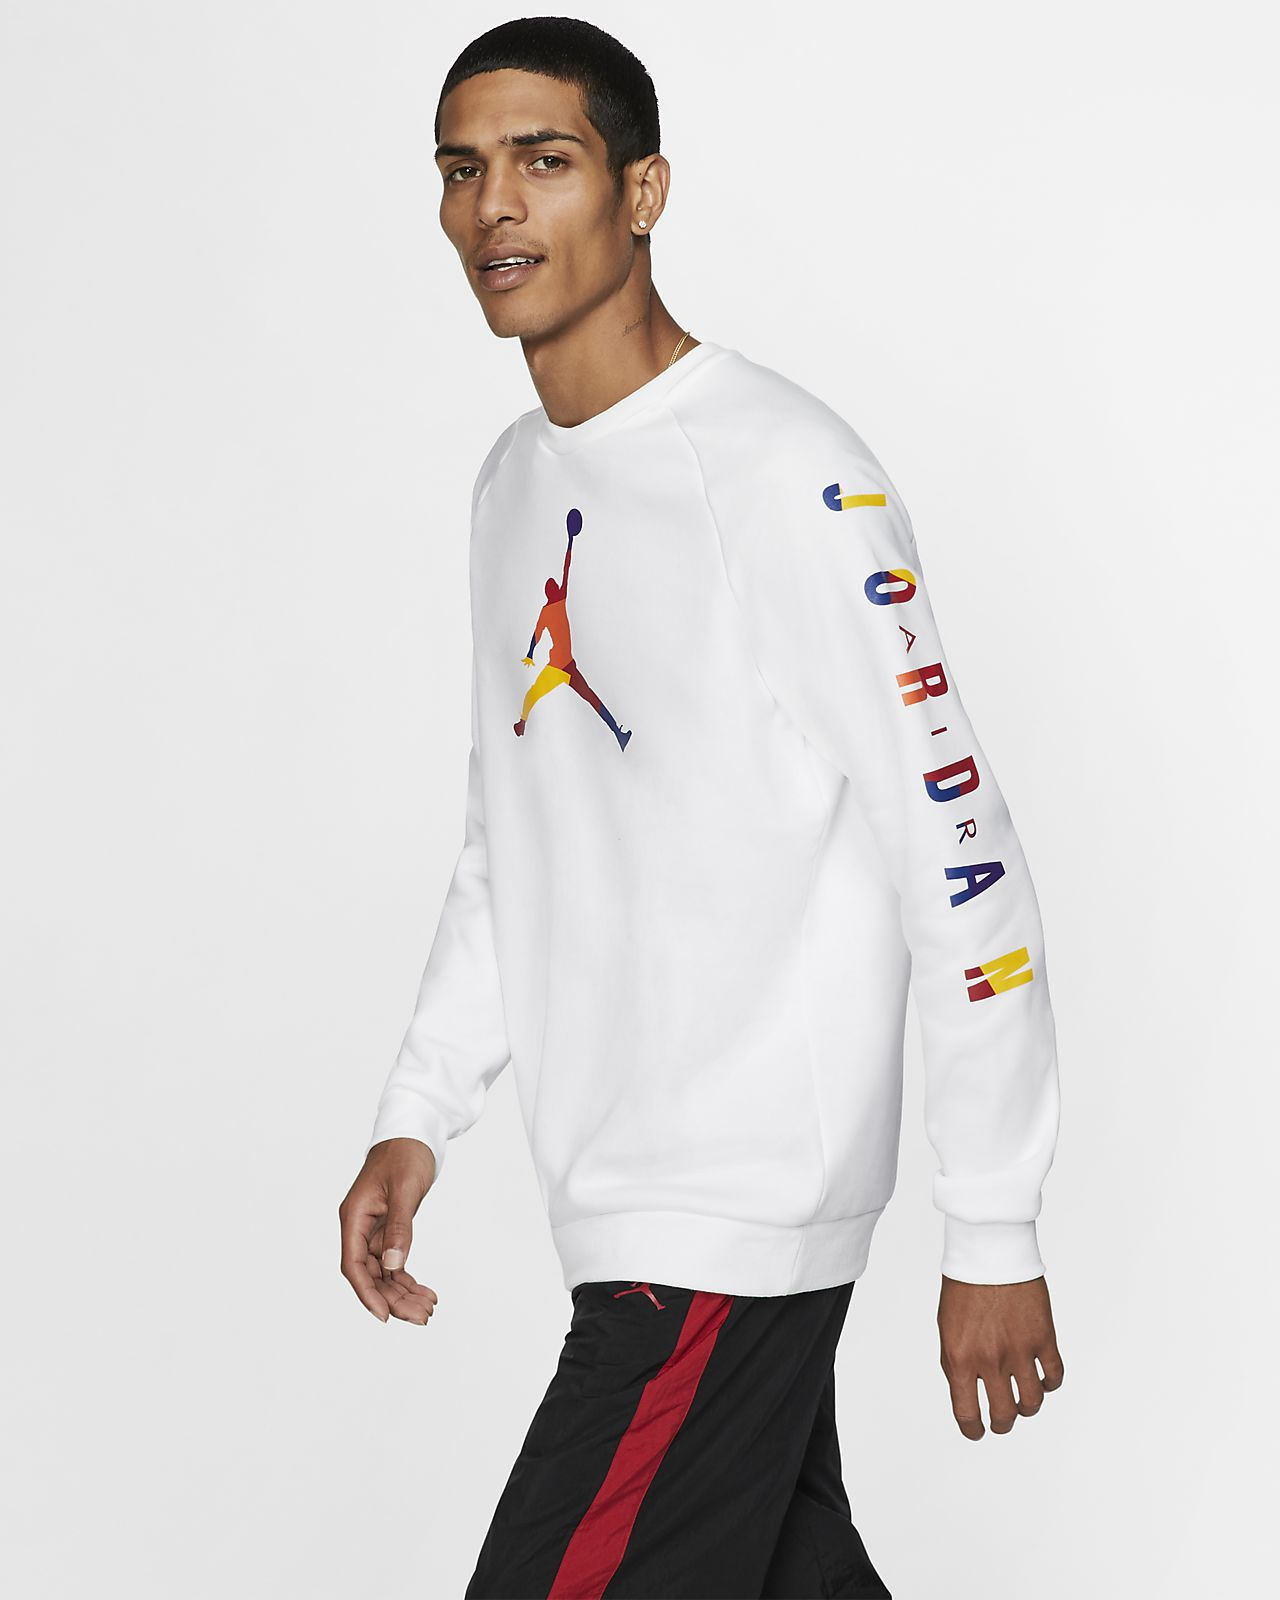 Jordan DNA-crewtrøje i fleece